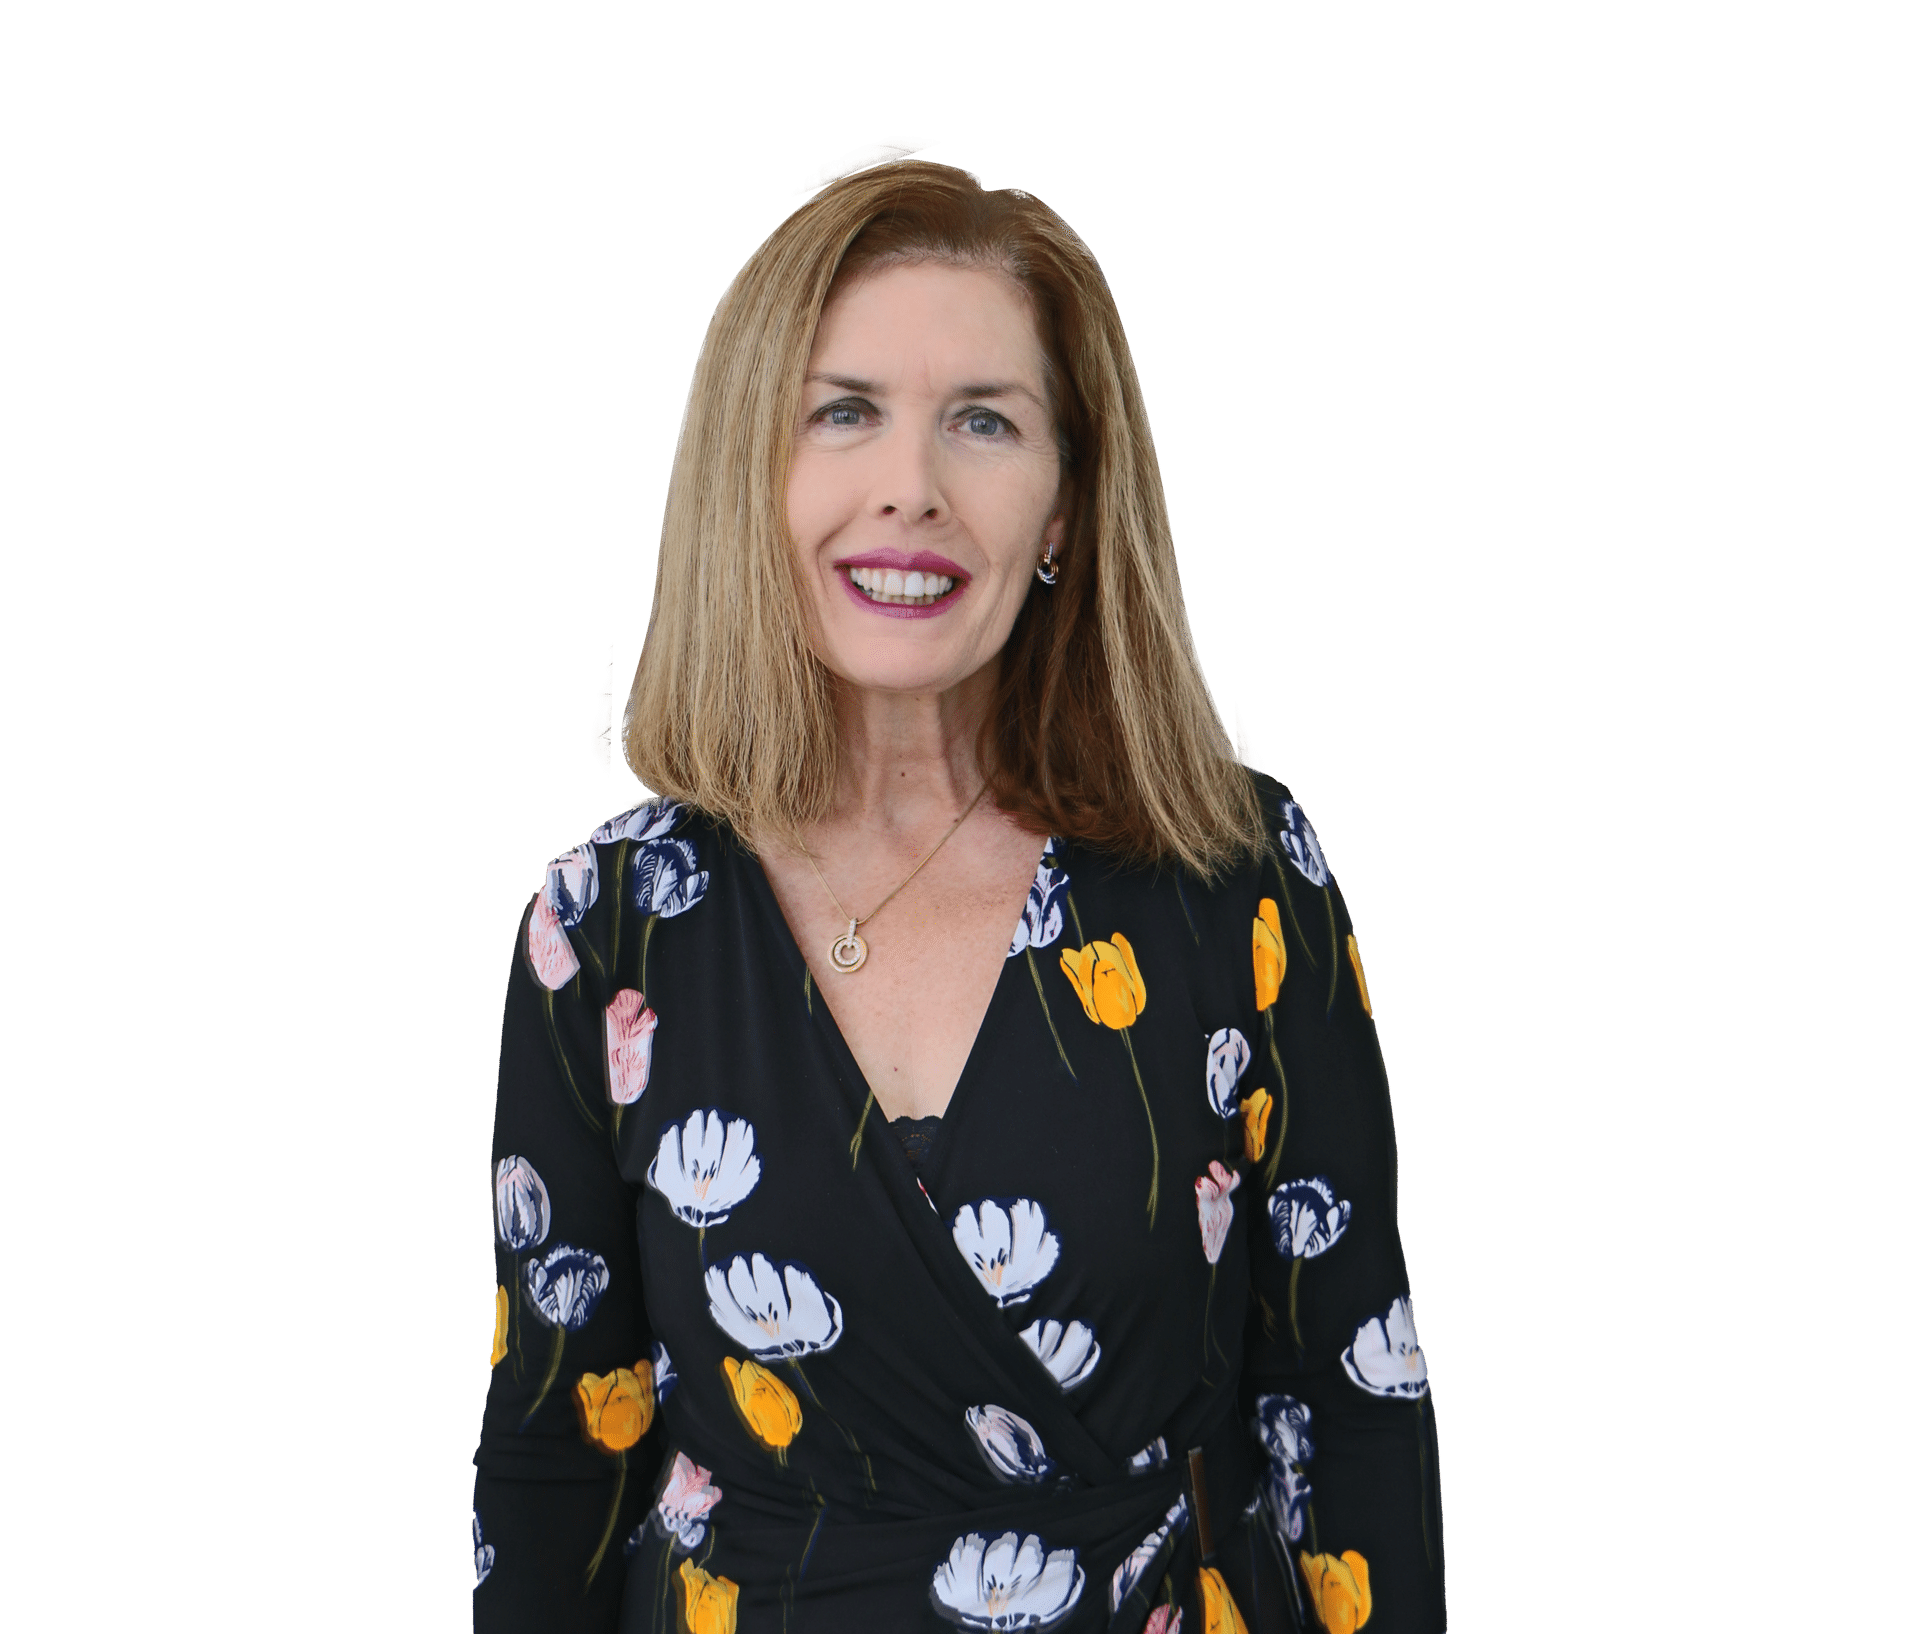 Laura Fox, General Manager, People & Culture